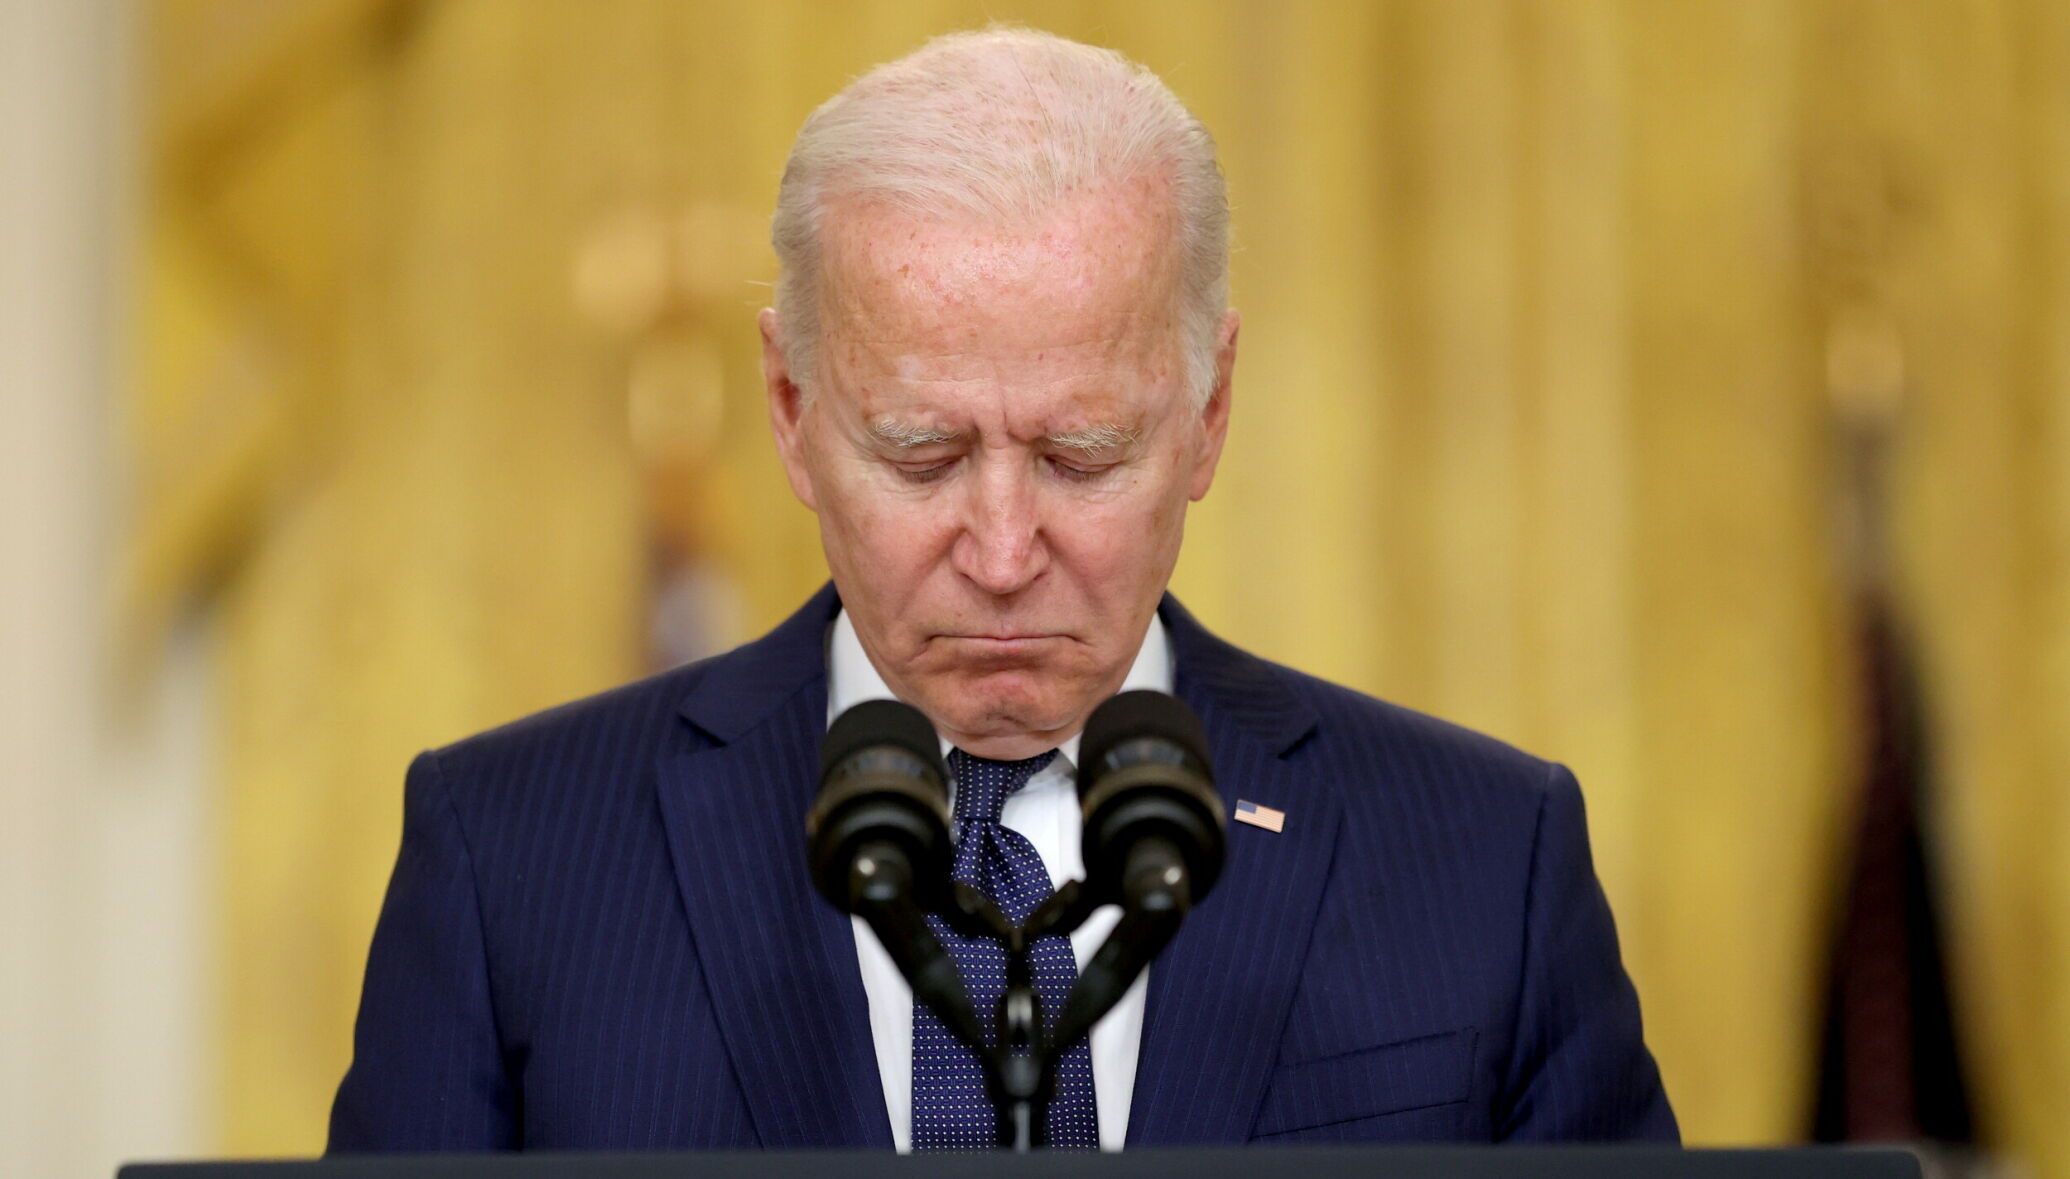 U.S. President Joe Biden reacts during a moment of silence for the dead as he delivers remarks about Afghanistan, from the East Room of the White House in Washington, U.S. August 26, 2021. REUTERS/Jonathan Ernst     TPX IMAGES OF THE DAY